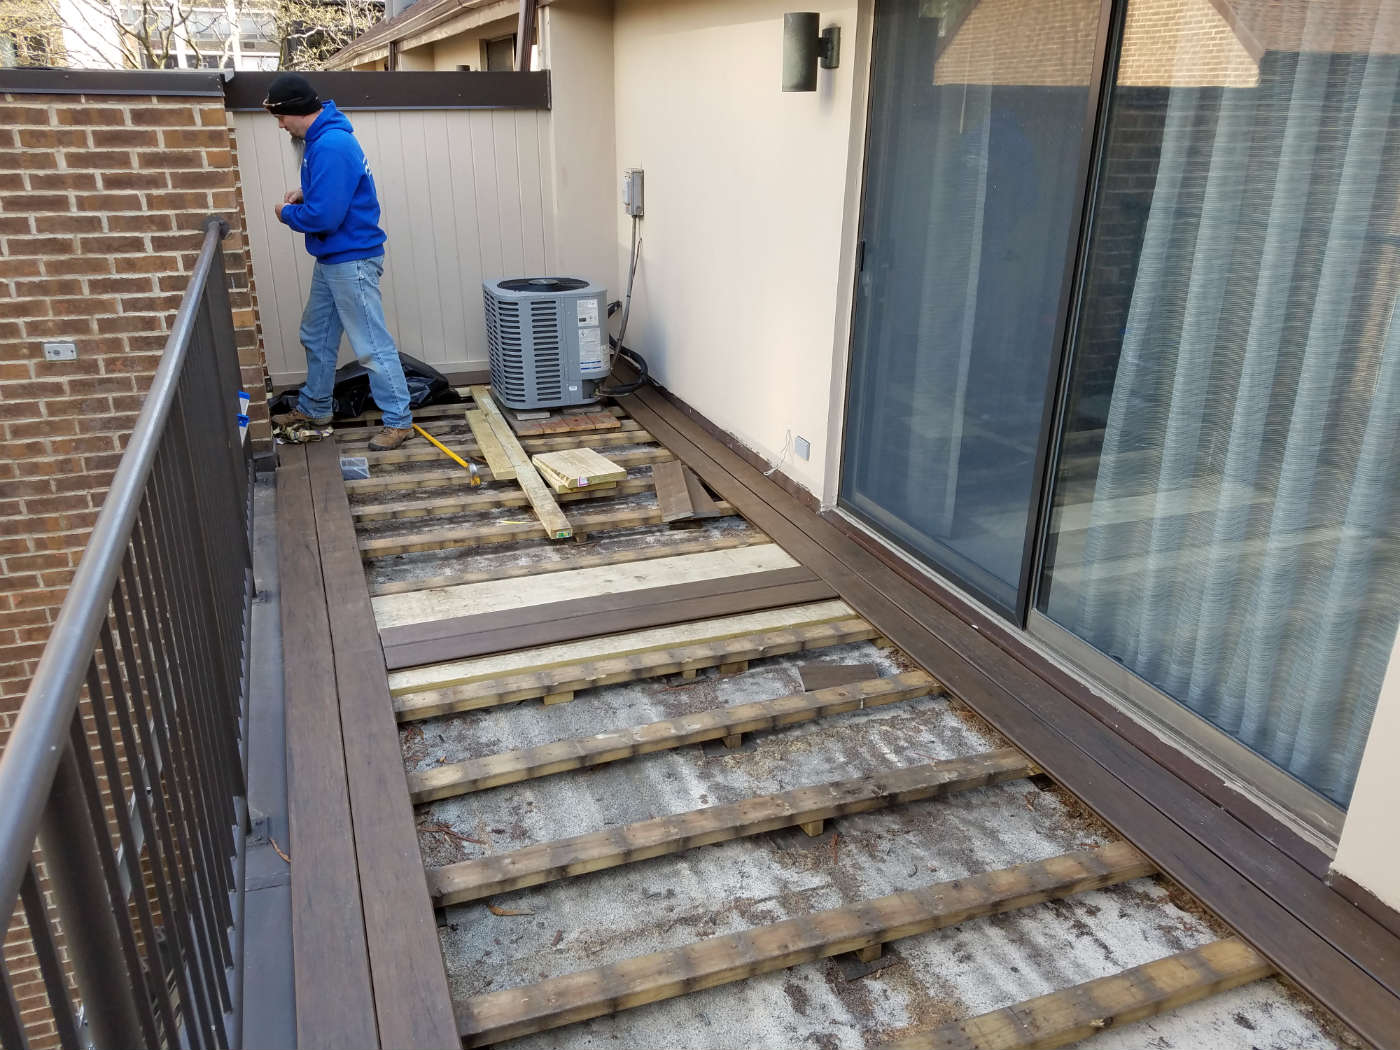 """Our Owner, David Berryhill Suggested To Make The Simple Deck More  Interesting By Designing The Deck As A €�picture Frame"""" By Having A Border  Going Around The"""